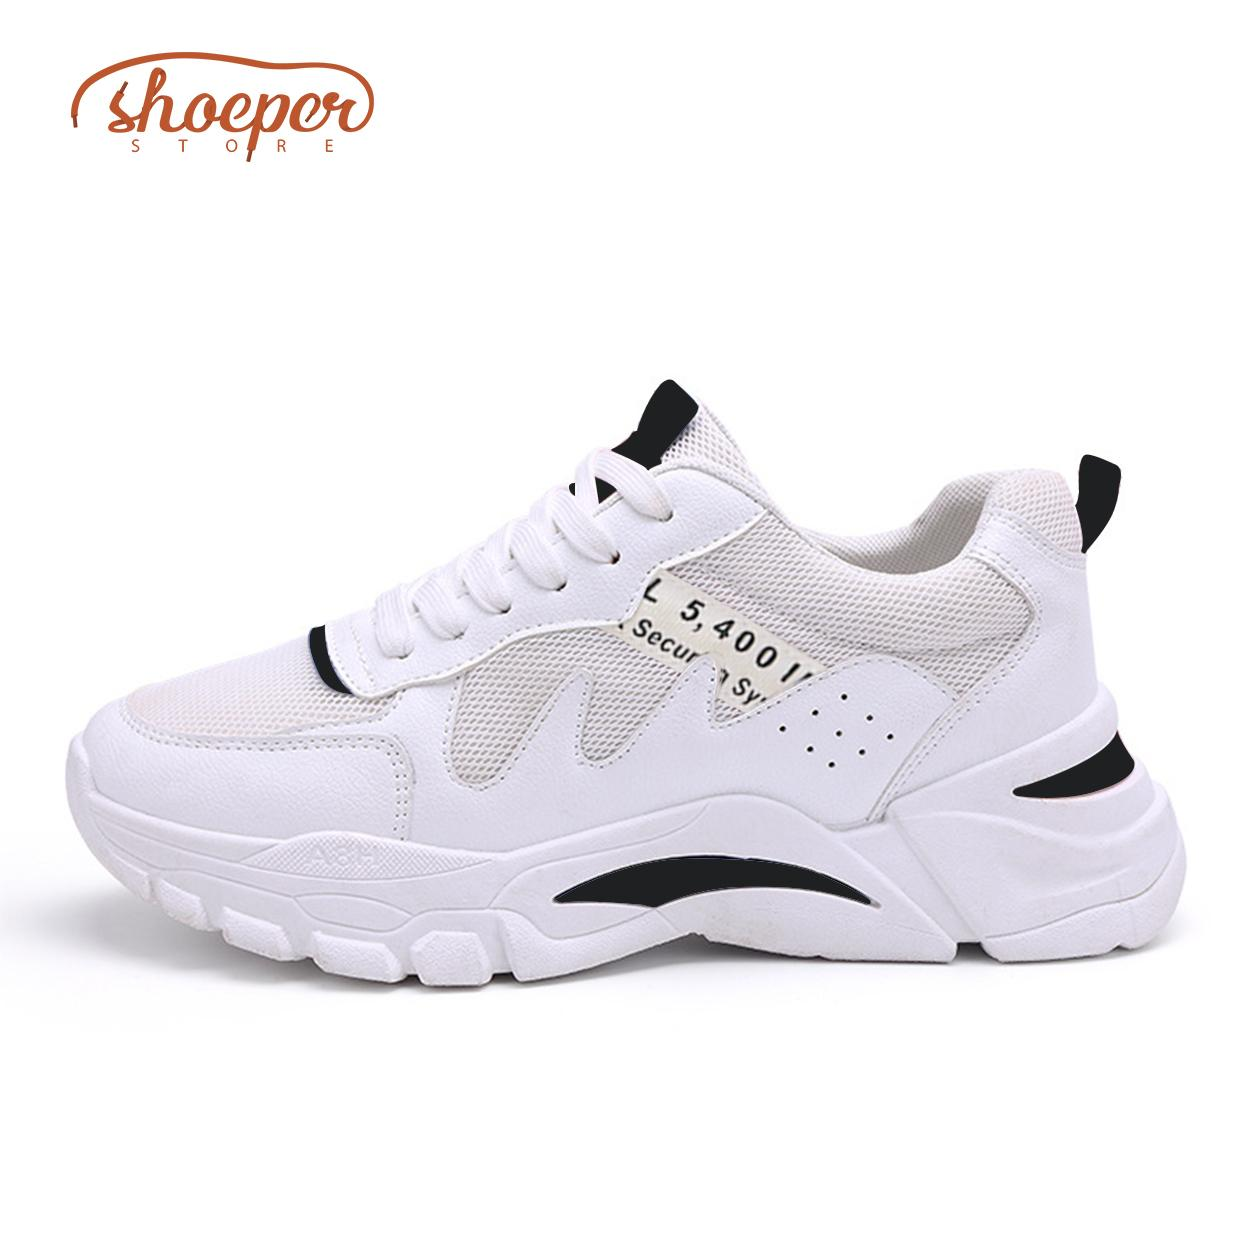 47f46875 ShoePer Zero Gravity (Casual Sneakers Shoes for Men)